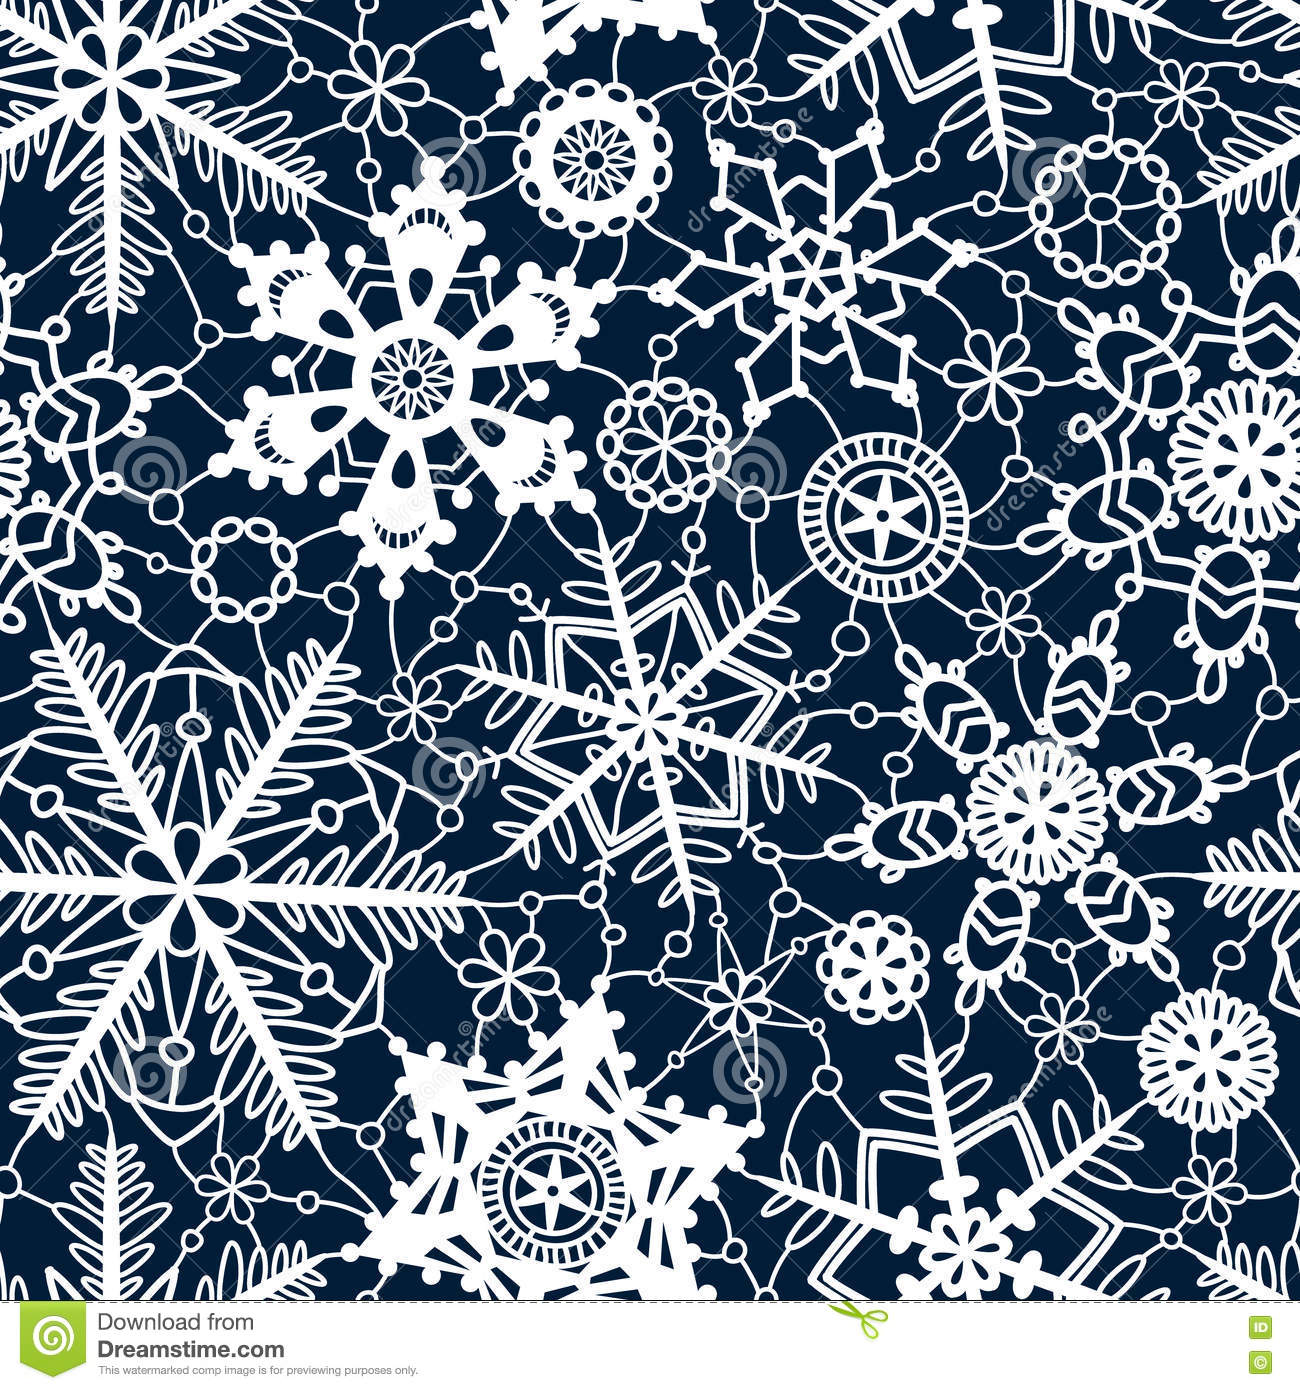 White lace crochet snowflakes seamless pattern on navy blue, vector